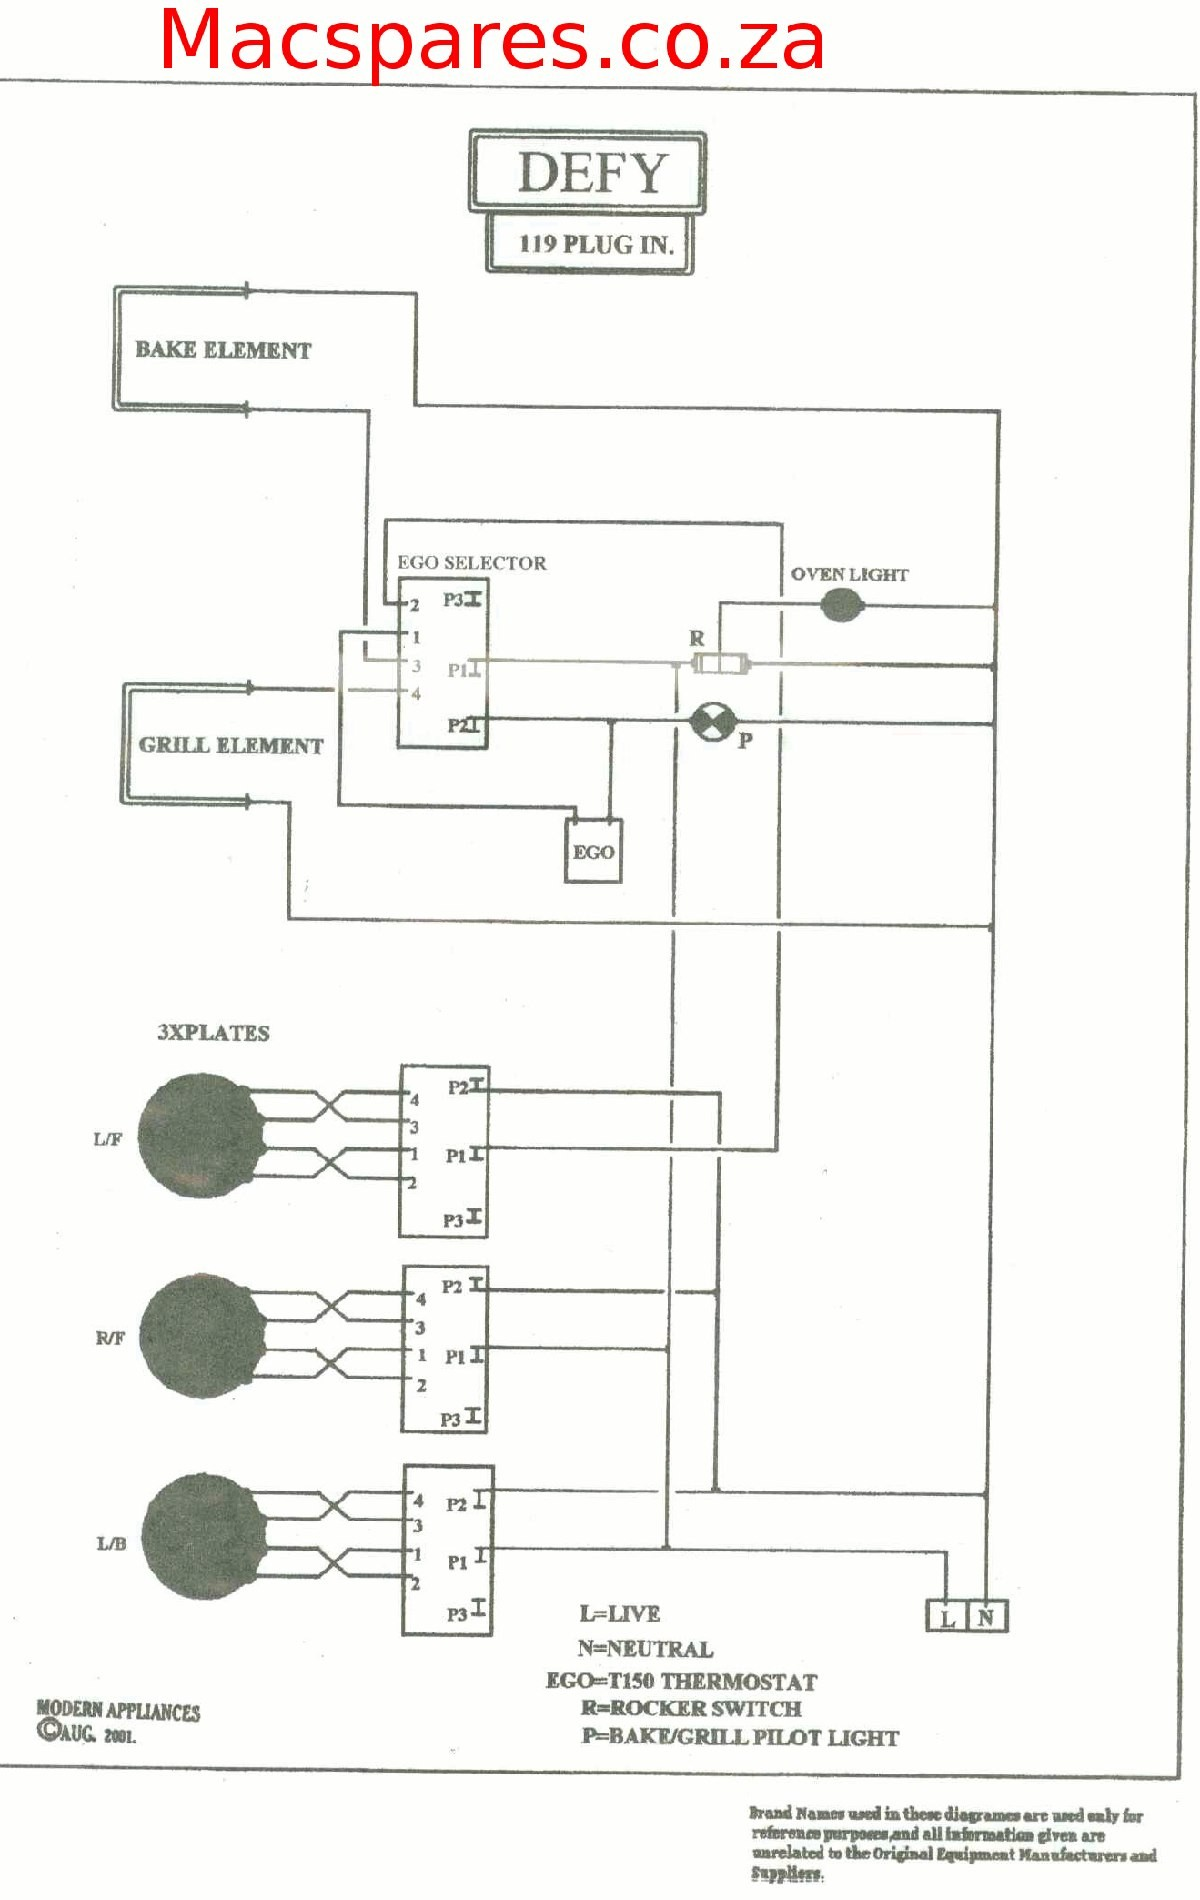 [XOTG_4463]  Stove Wiring | Wiring Diagram | Hotpoint Stove Wiring Diagram |  | Wiring Diagram - Autoscout24